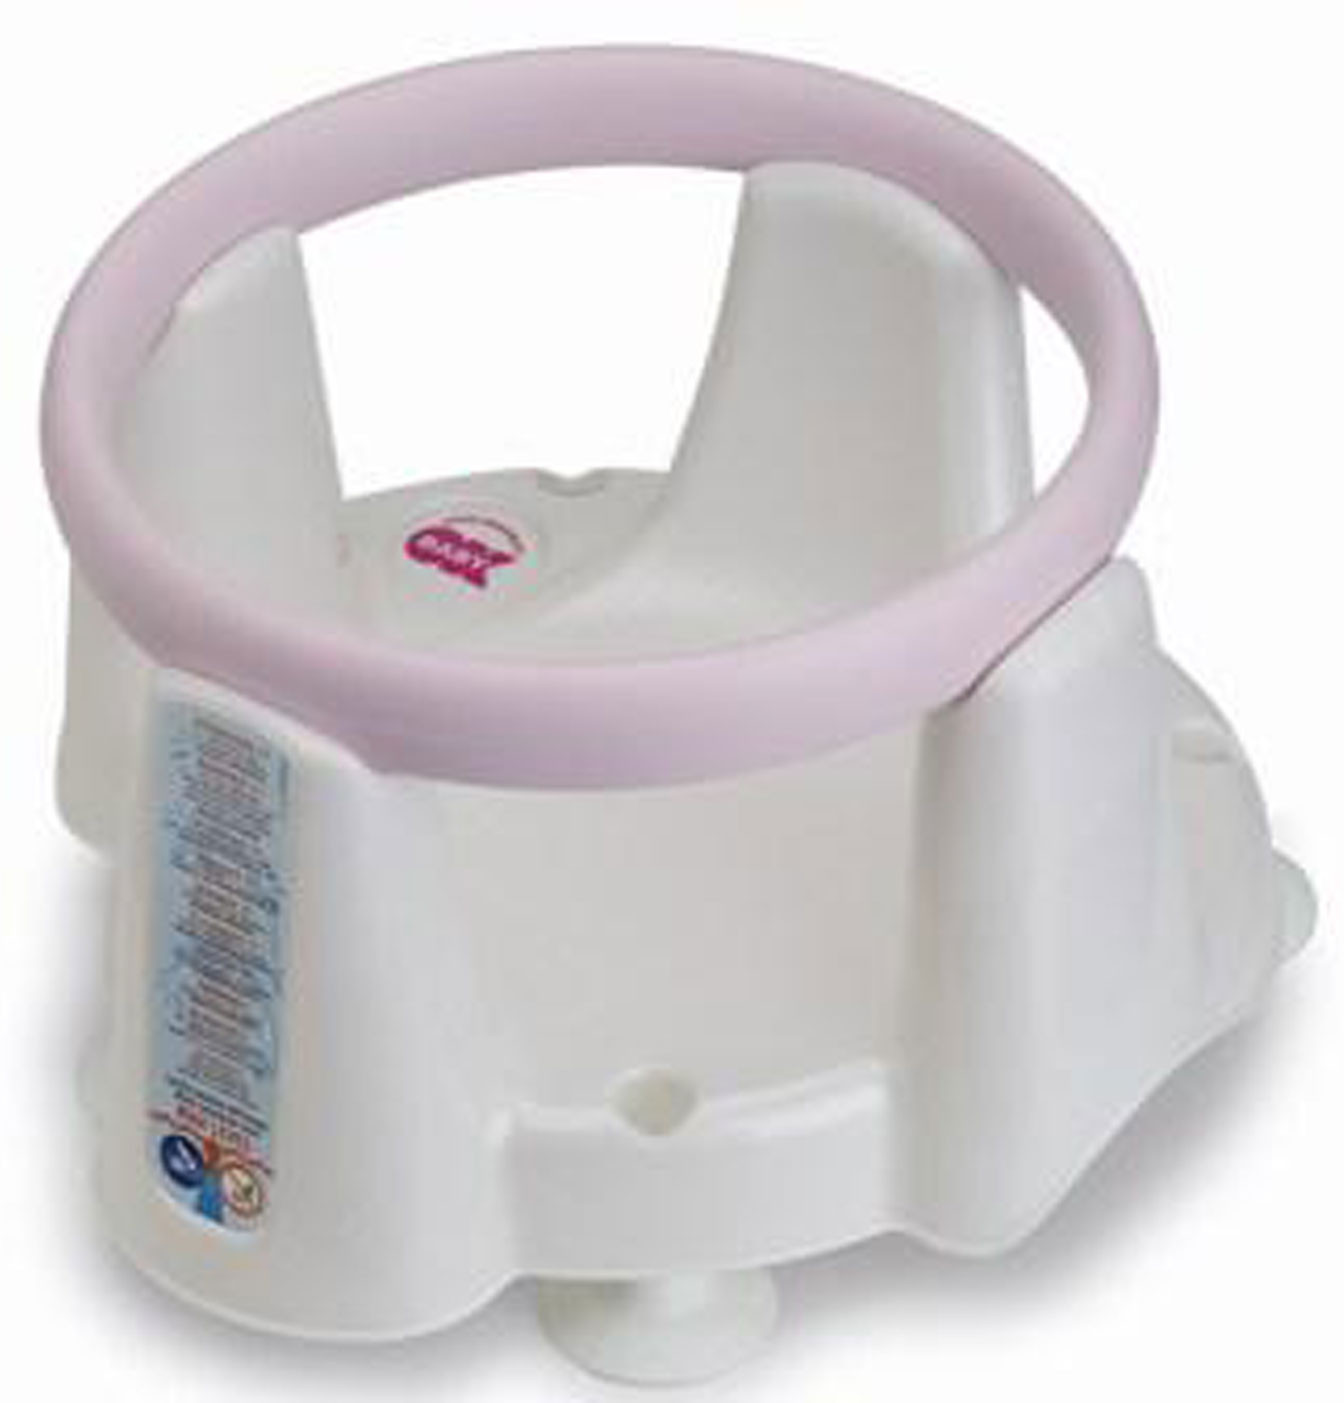 Bath Seats Price in India. Buy Bath Seats Online at best price in ...